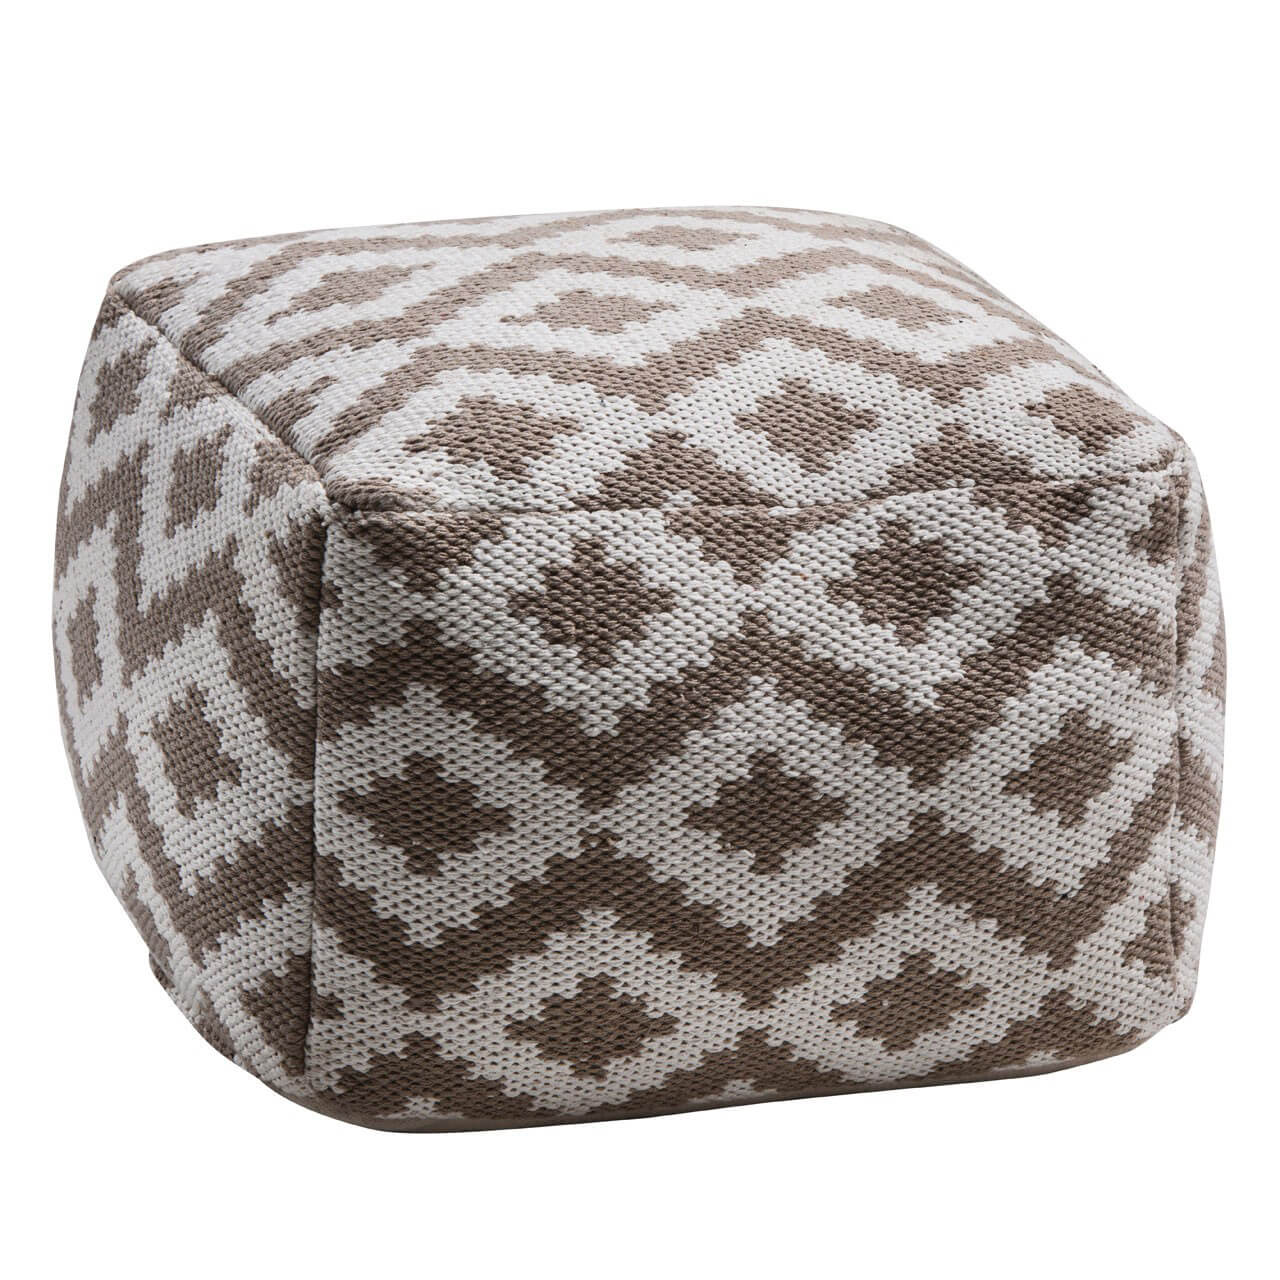 Aztec brown pouffe footstool